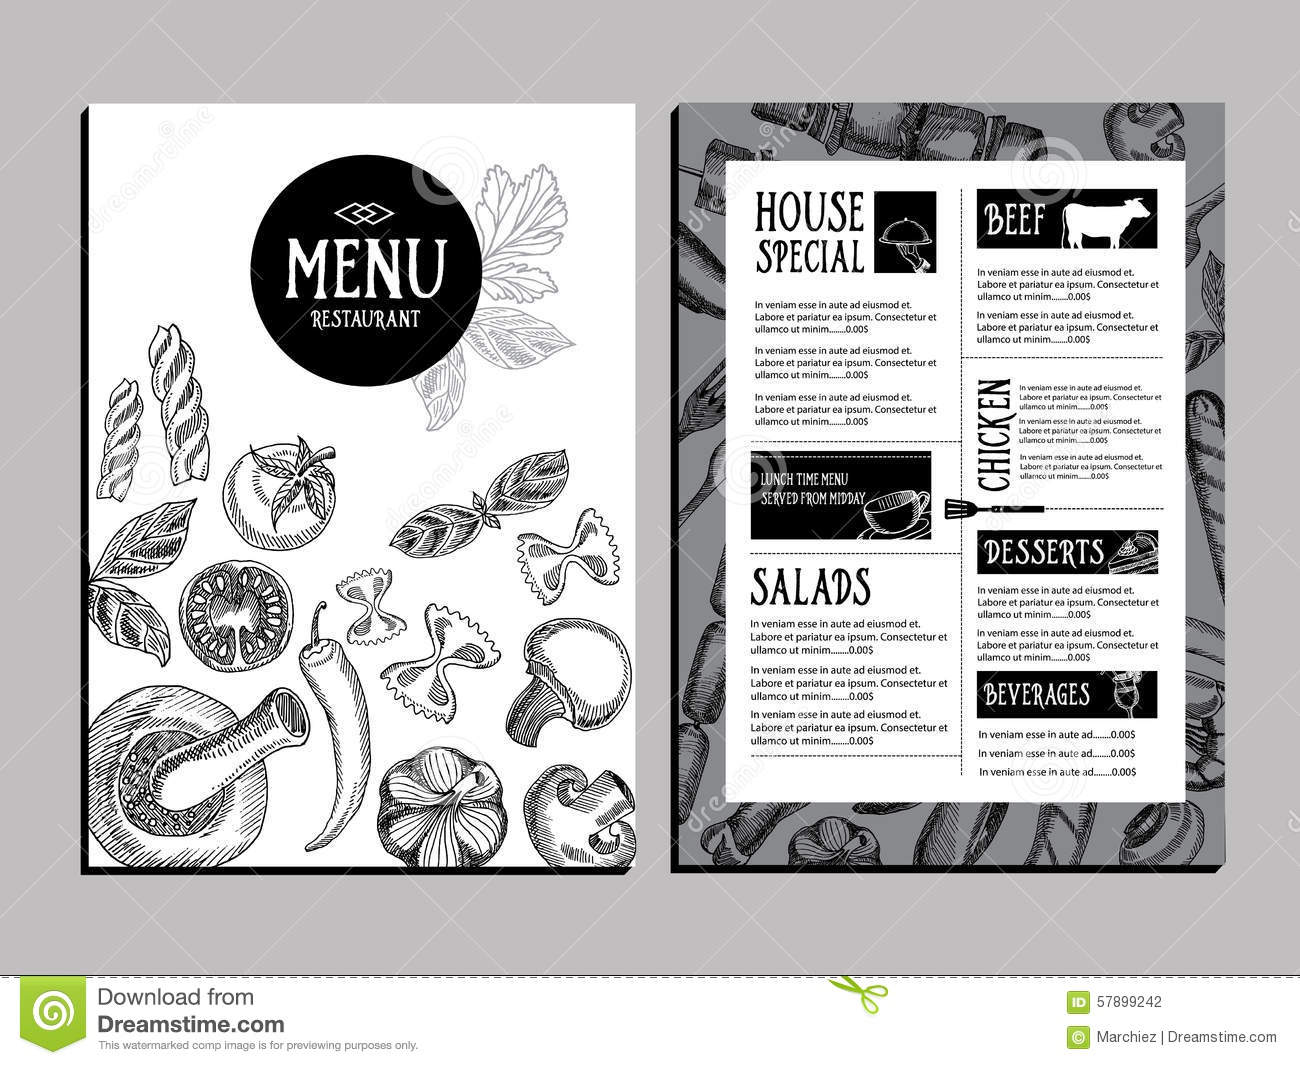 Restaurant Brochure Design Vector : Cafe menu restaurant brochure food design template stock